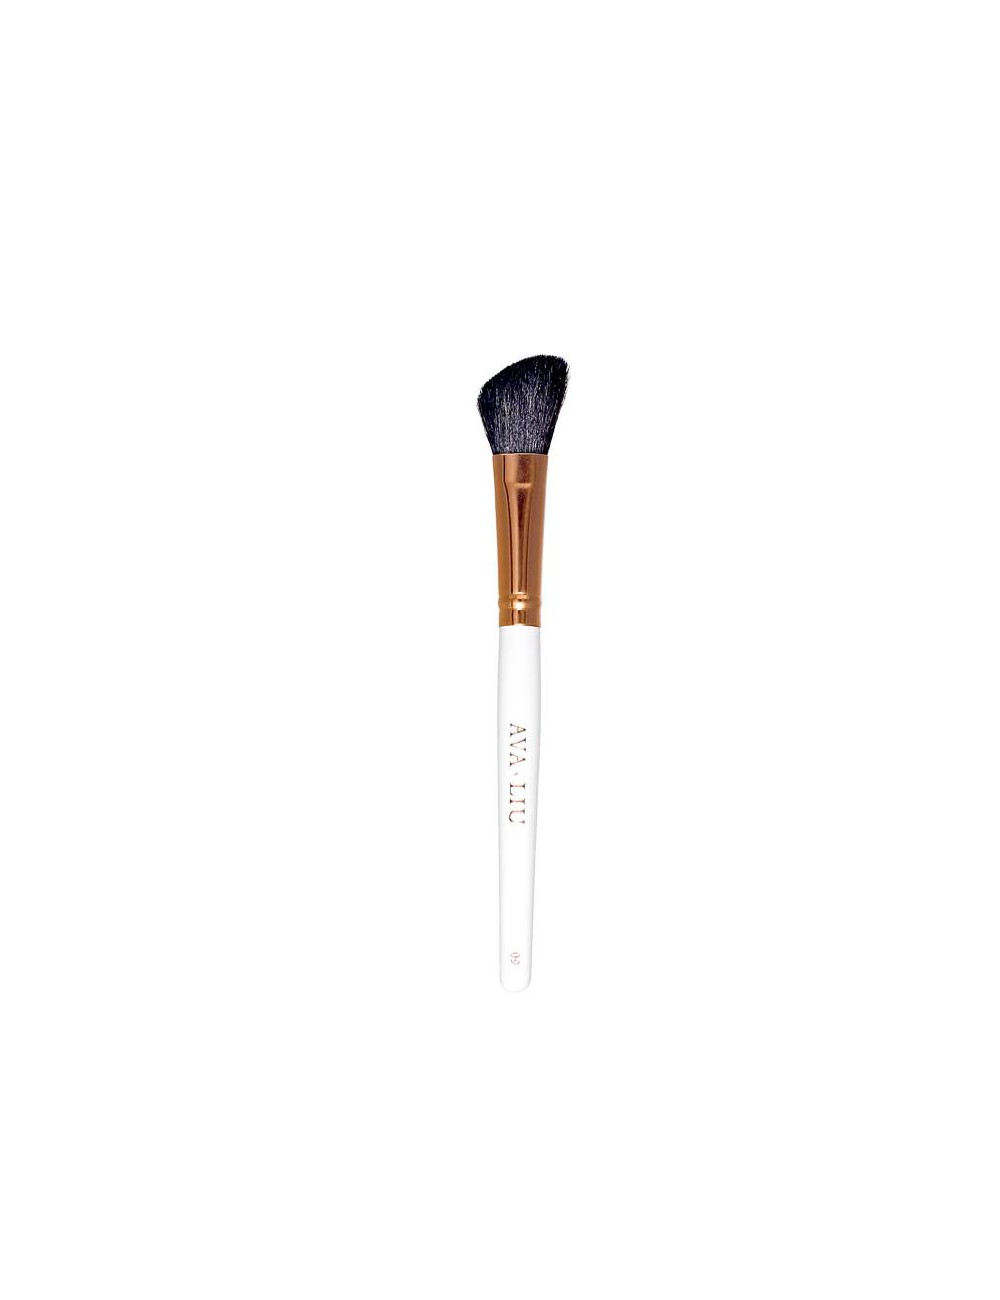 AVA.LIU Contouring brush - no.9